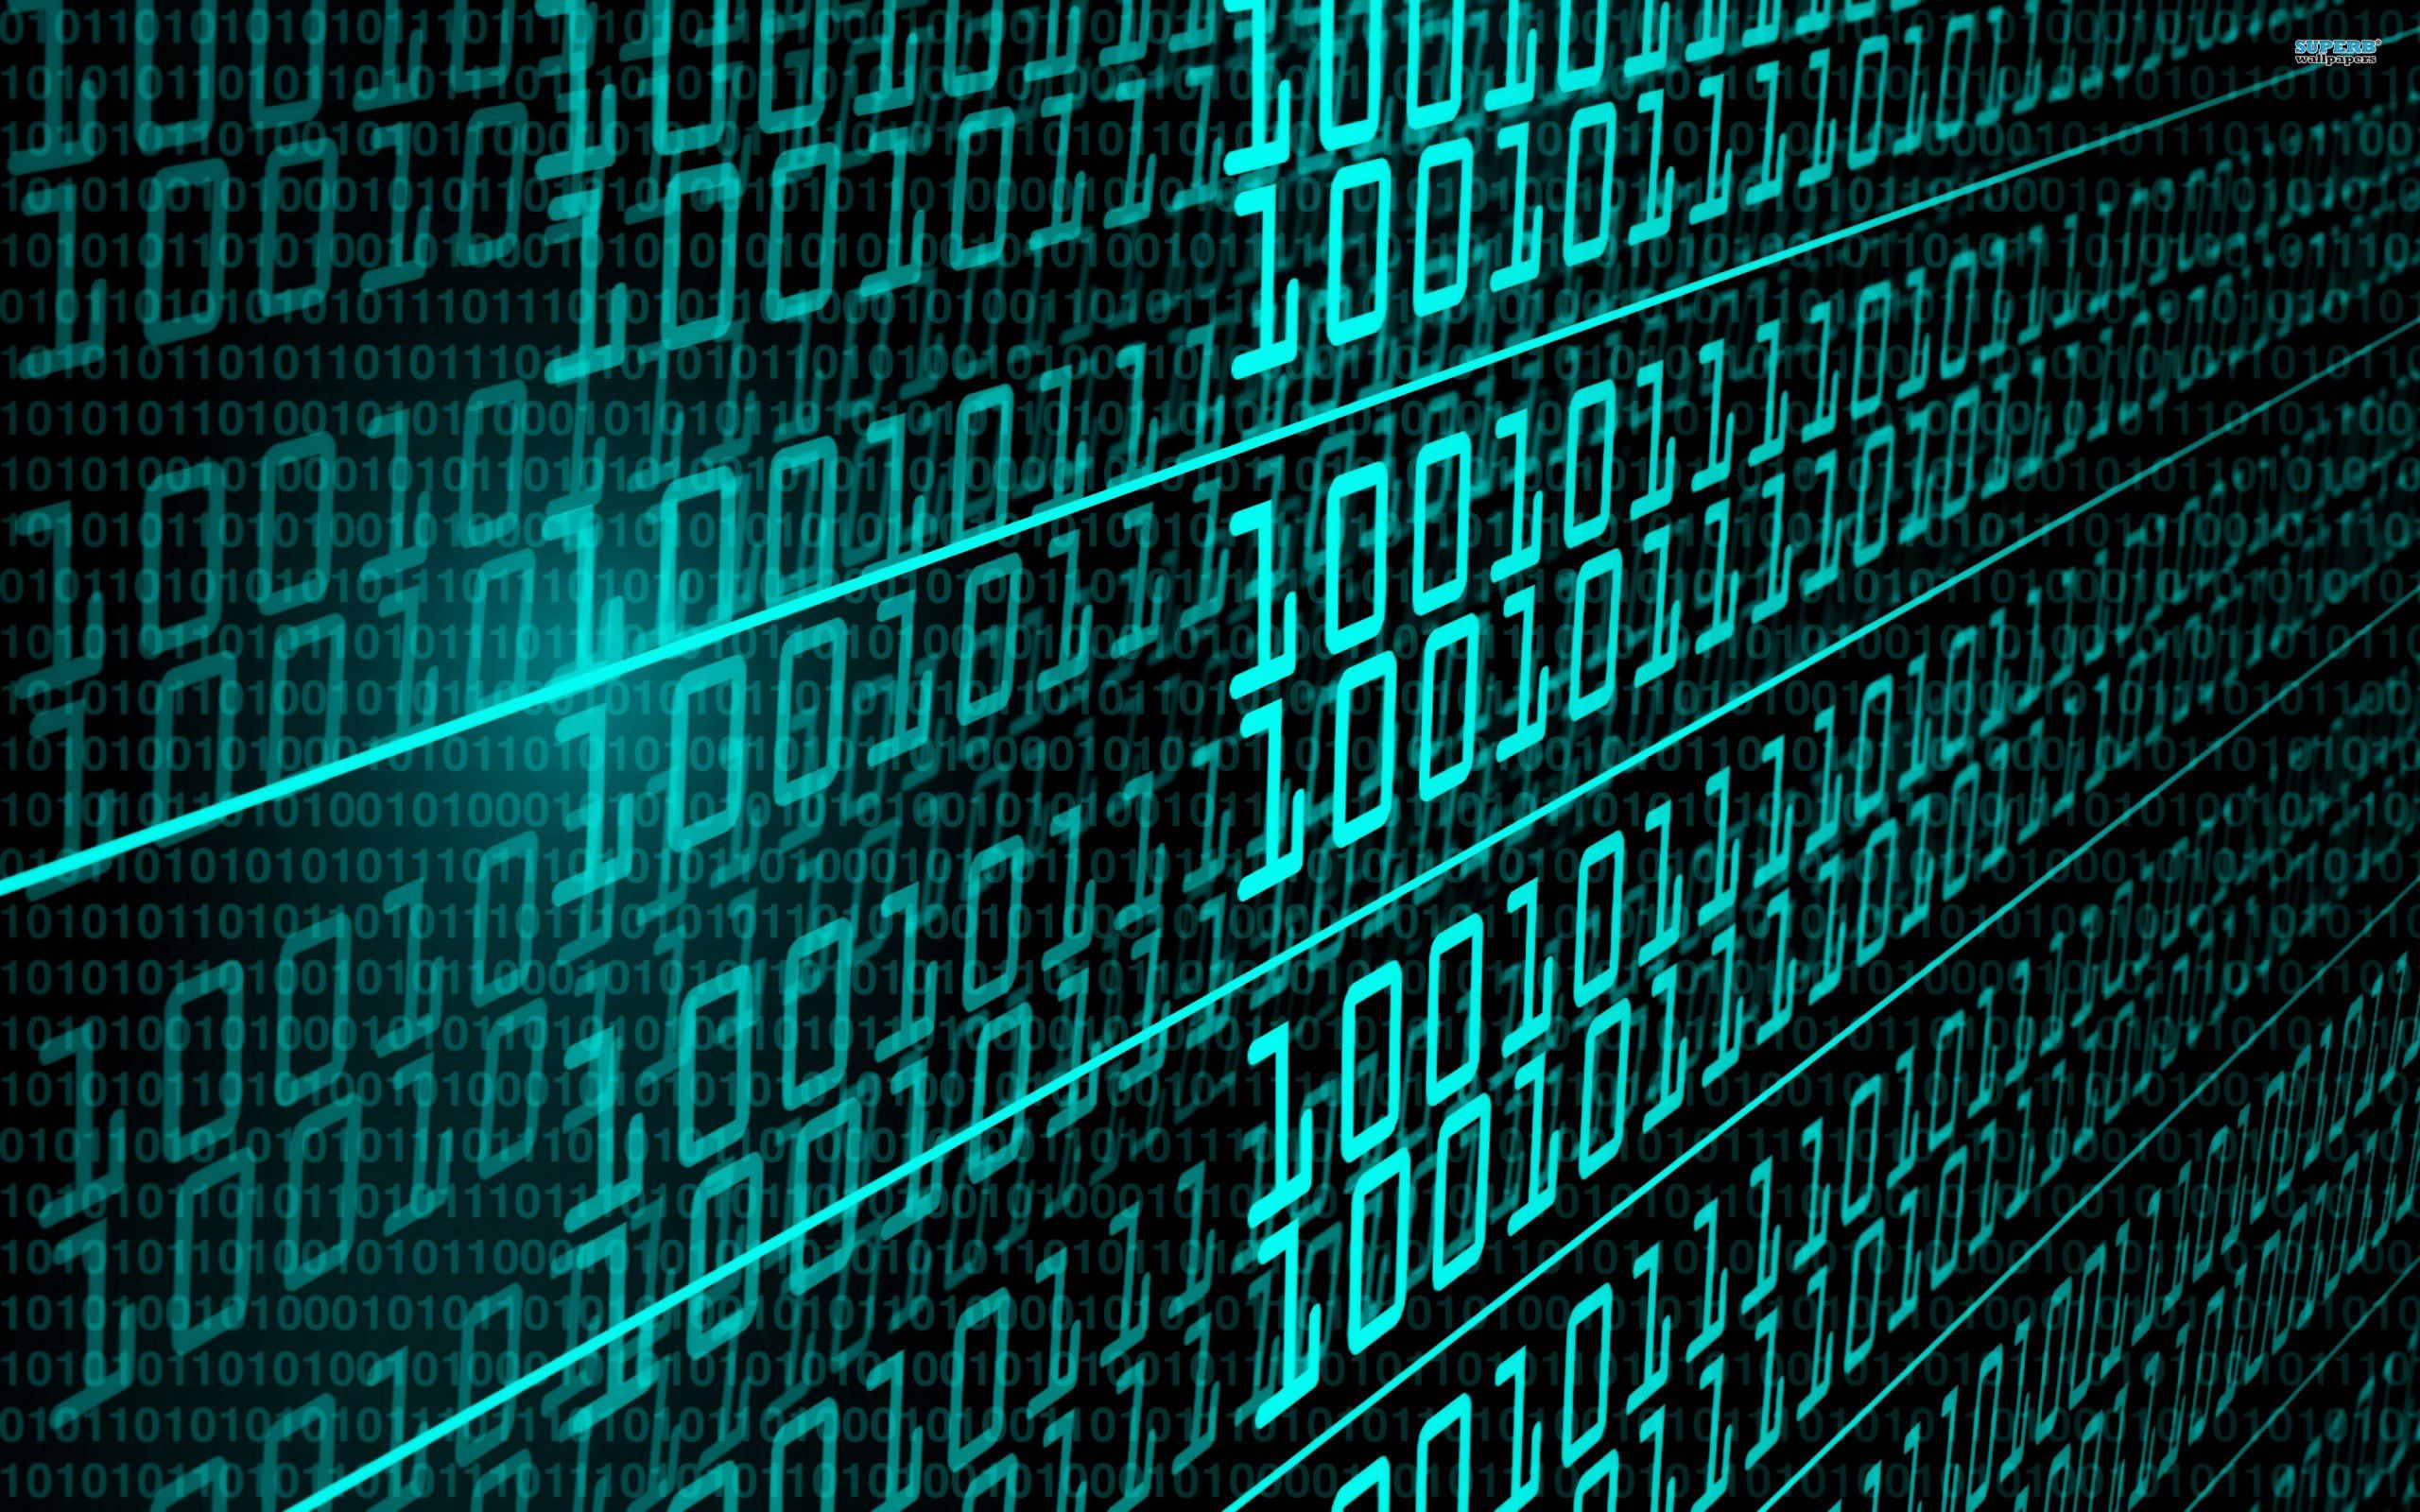 Binary Code Wallpaper Computer Wallpapers Coding Computer Science Code Wallpaper